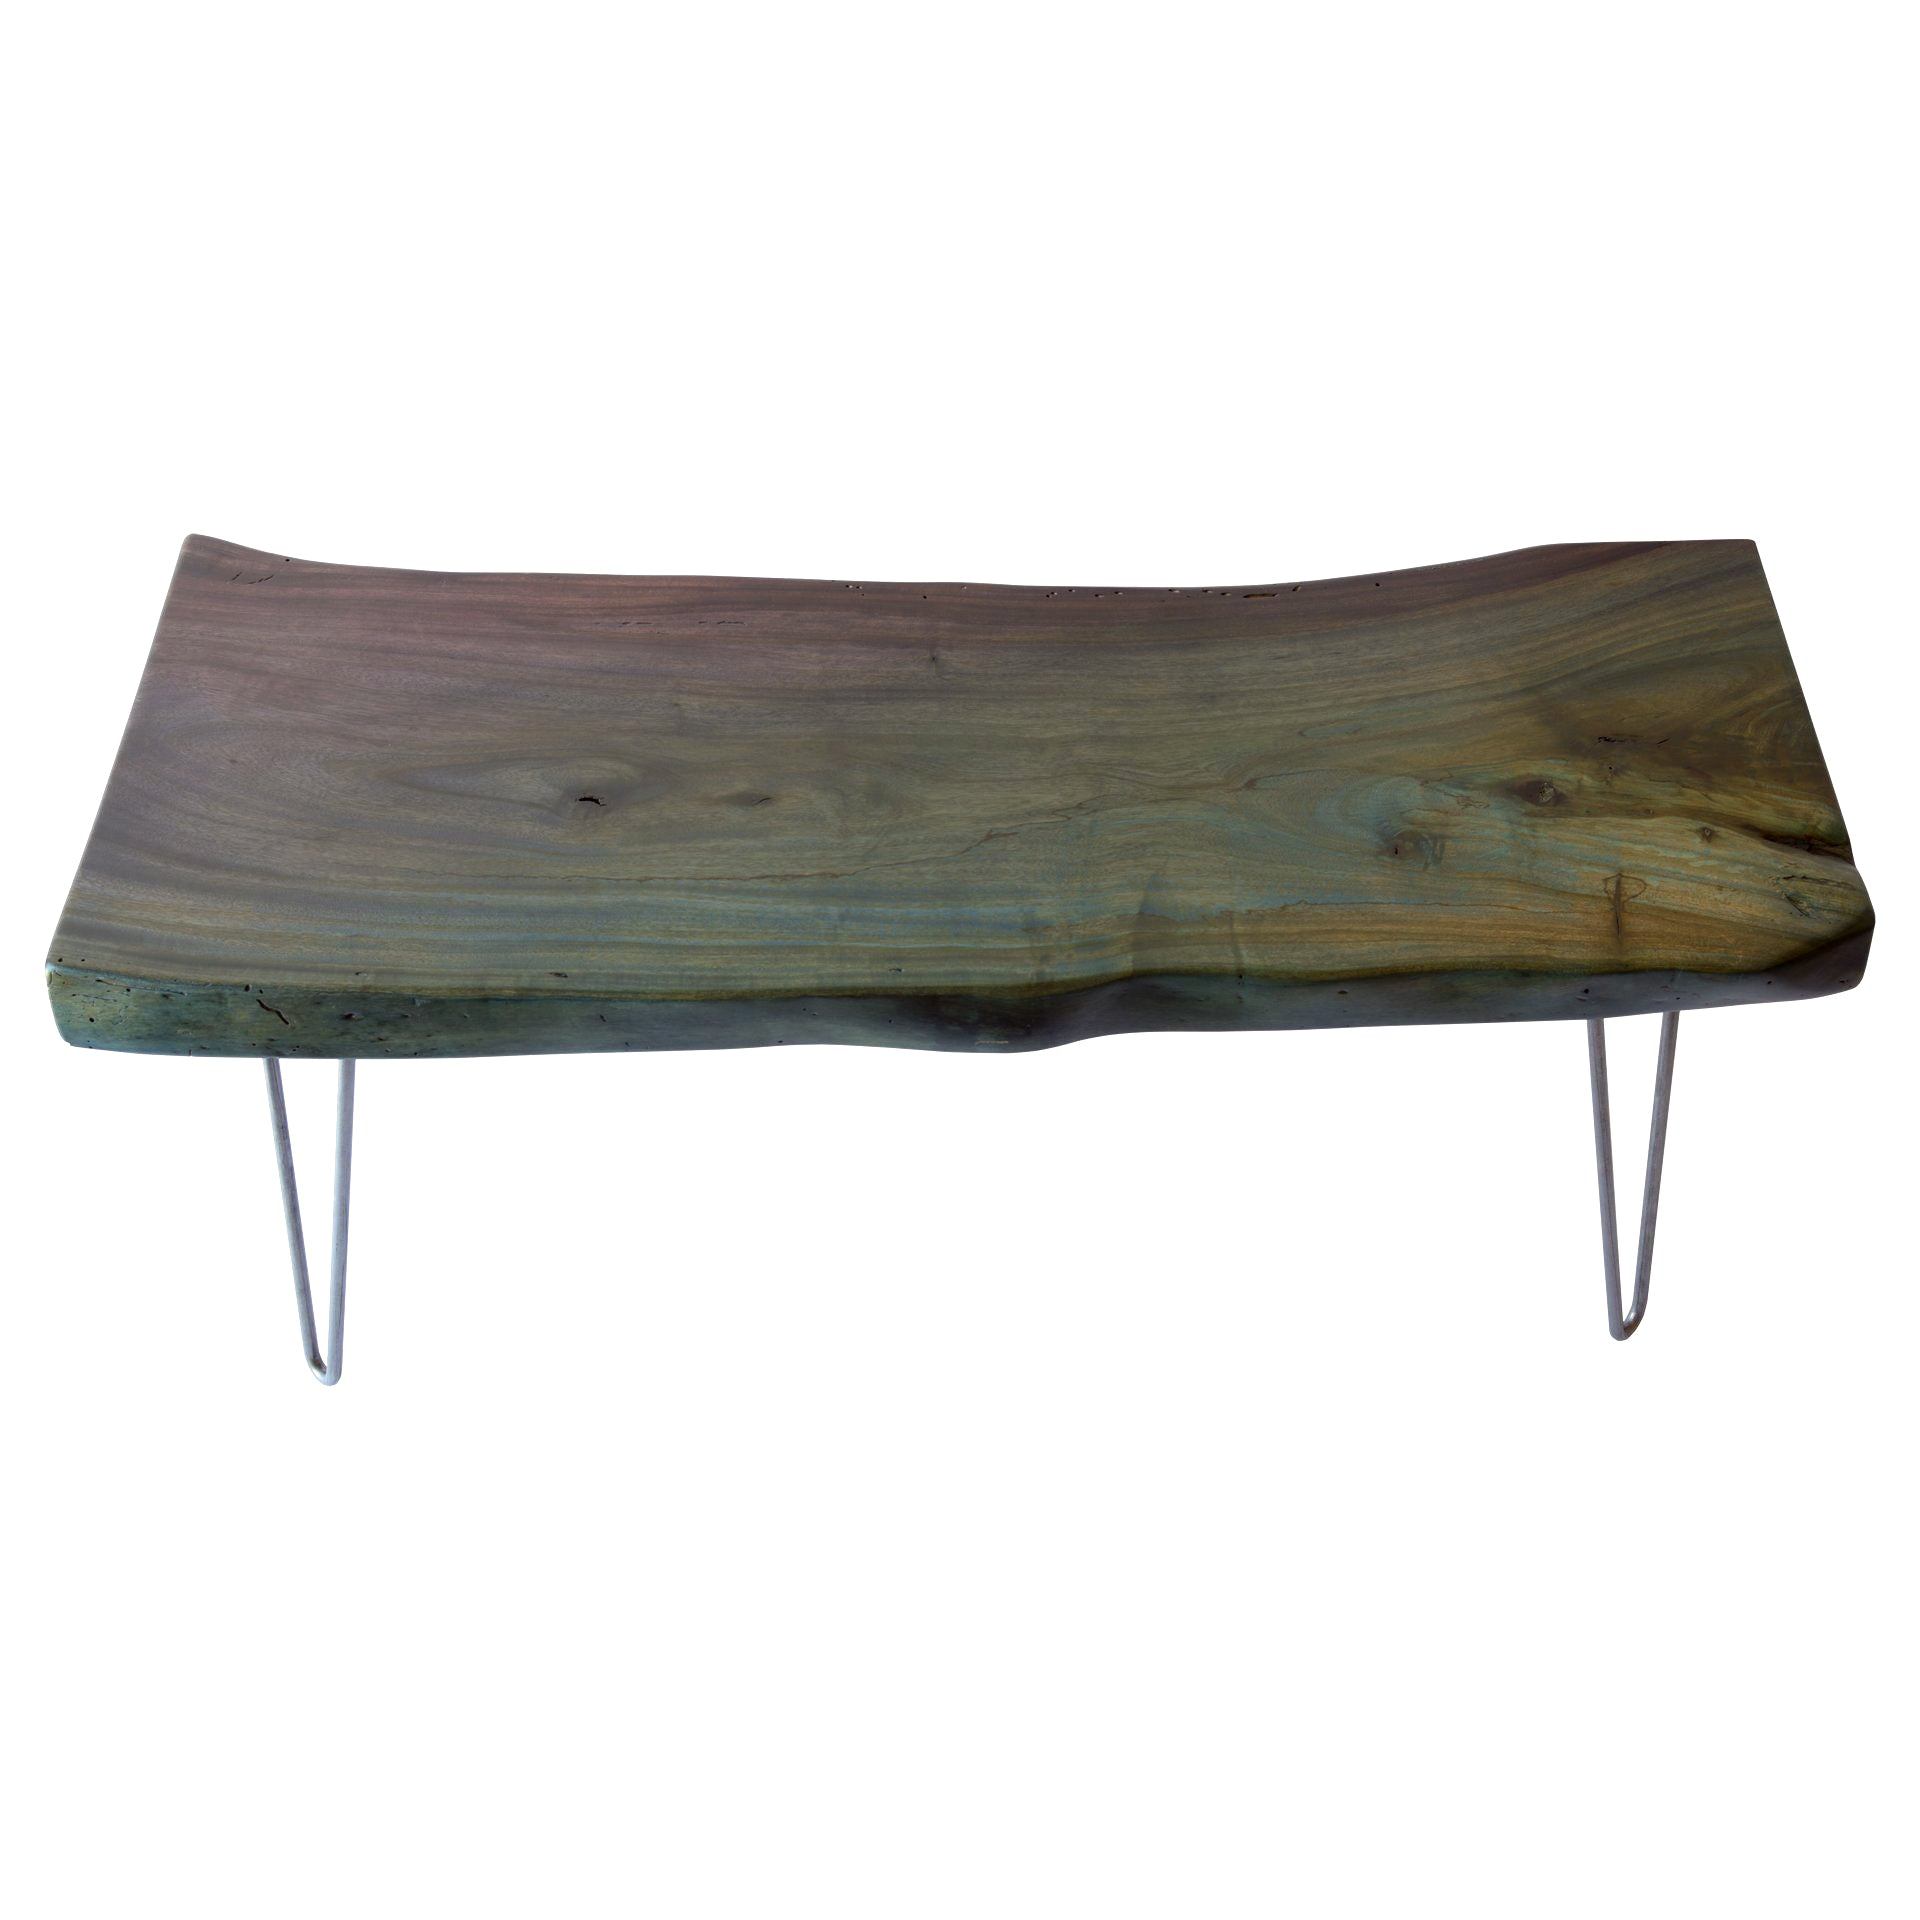 Teal And Maroon Live Edge Slab Reclaimed Wood Coffee Table Woodwaves